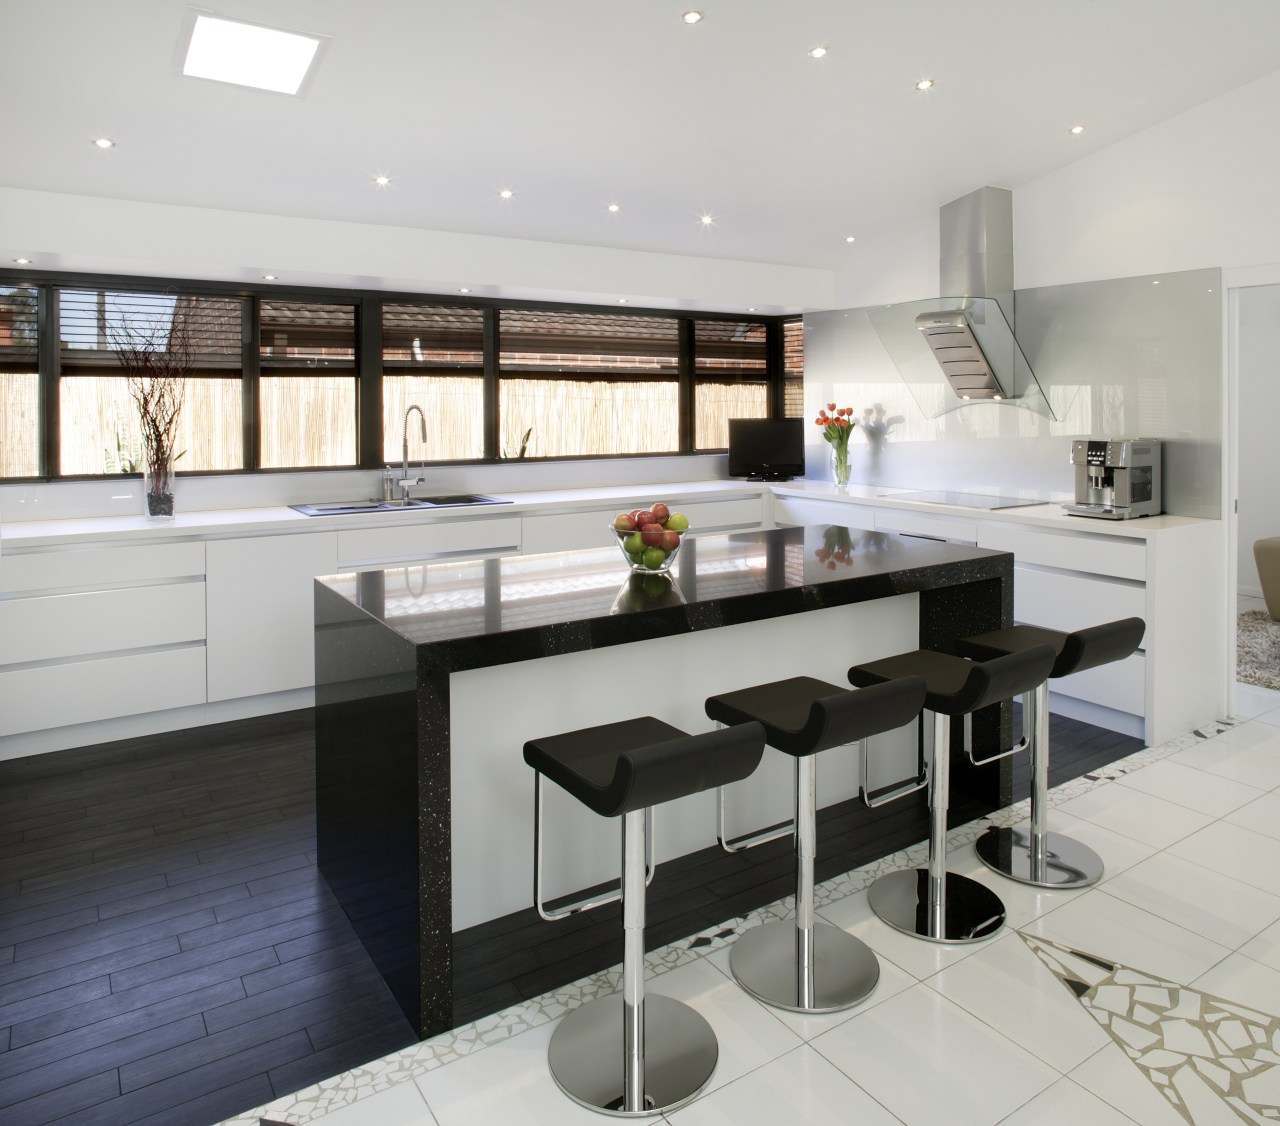 With a fully integrated kitchen design, appliances are countertop, cuisine classique, interior design, kitchen, gray